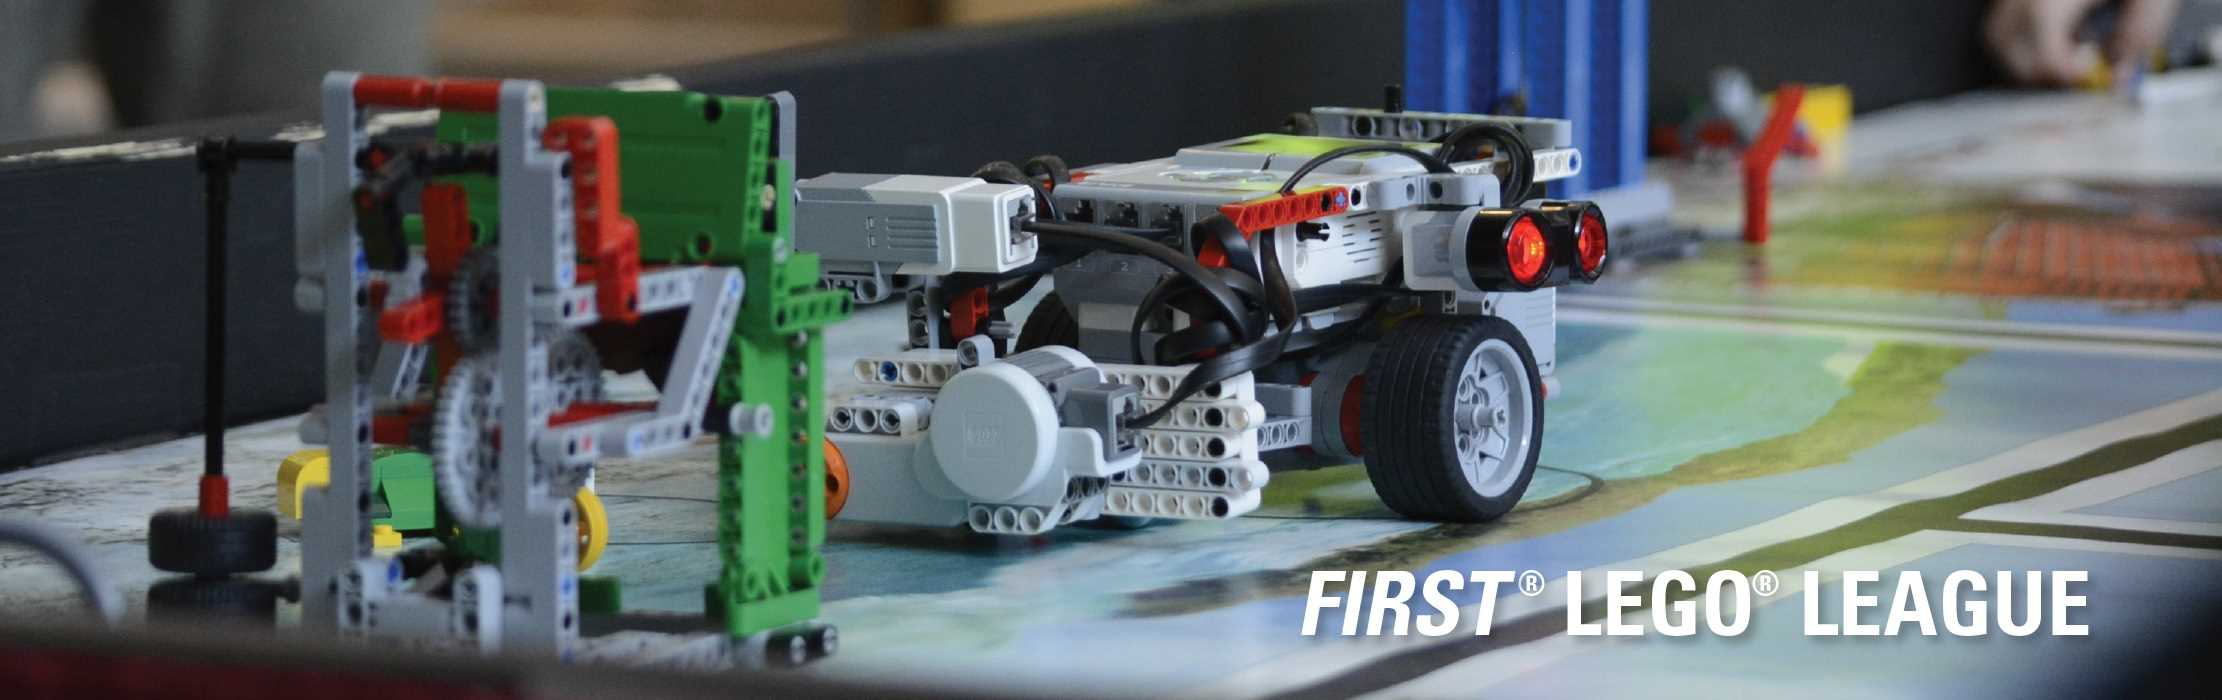 A closeup photo of a LEGO robot: FIRST LEGO League.